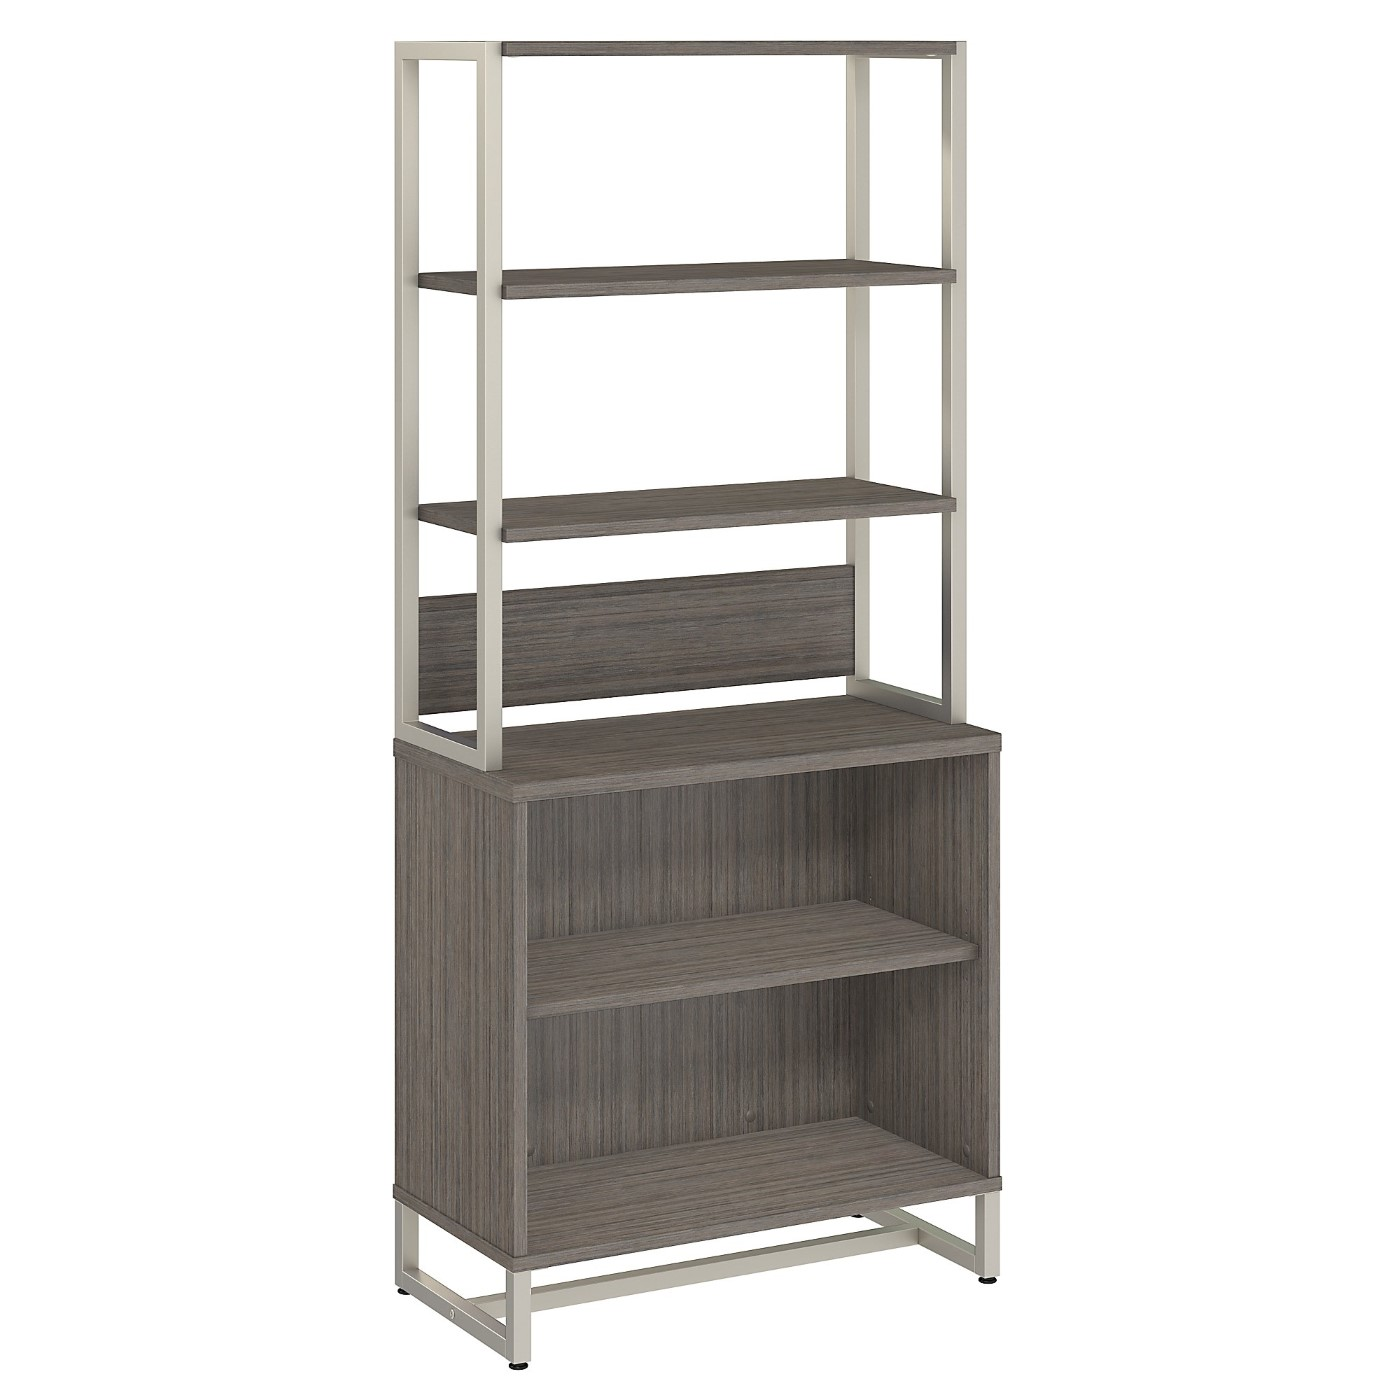 OFFICE BY KATHY IRELAND� METHOD BOOKCASE WITH HUTCH. FREE SHIPPING